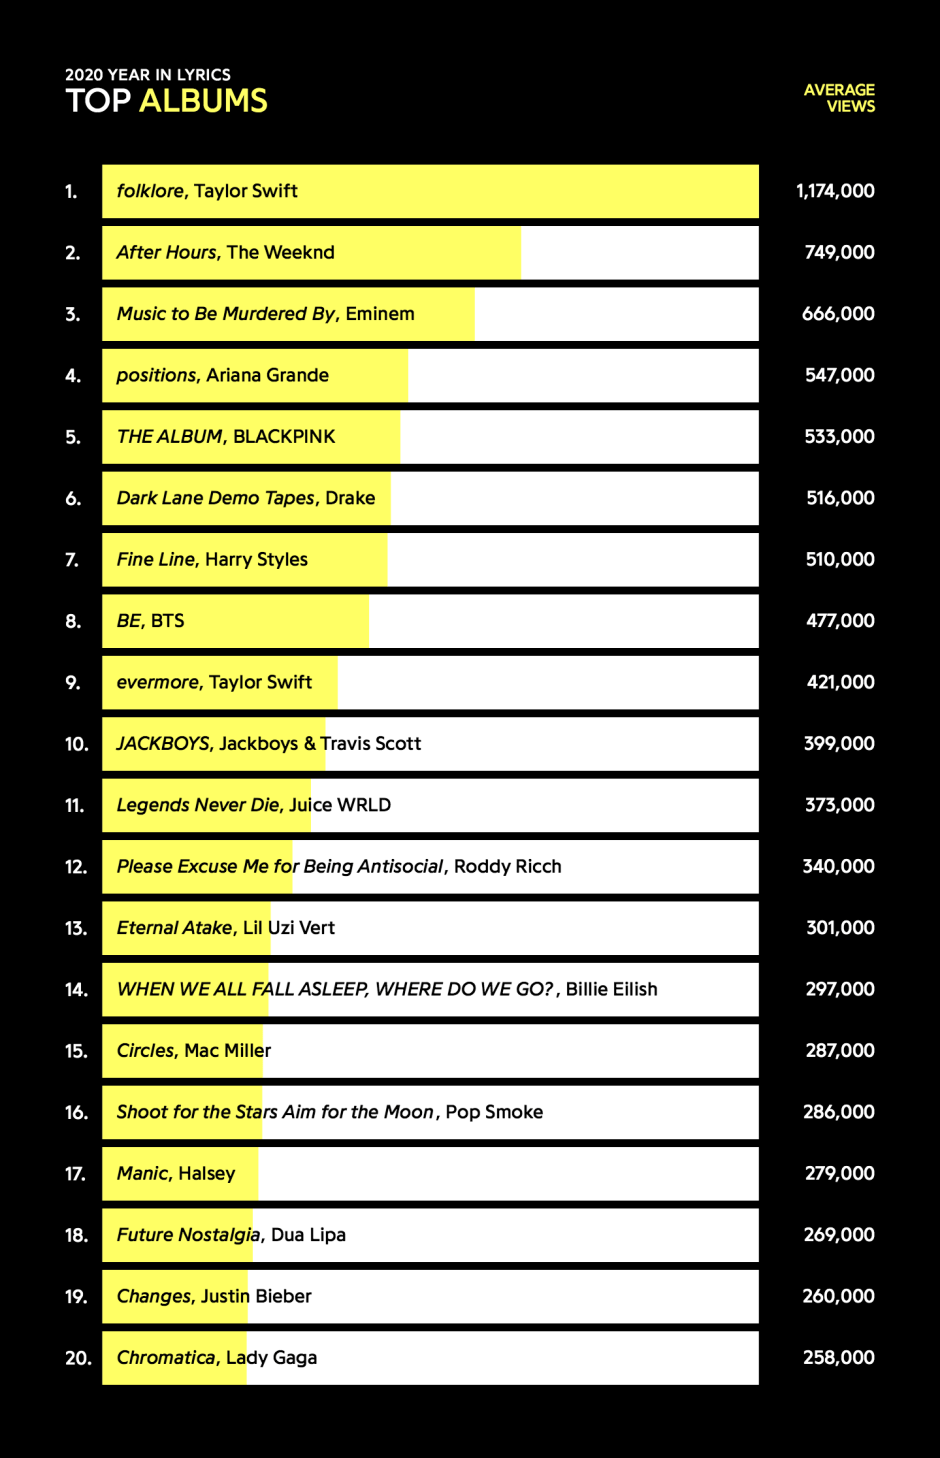 most-viewed-albums-2020